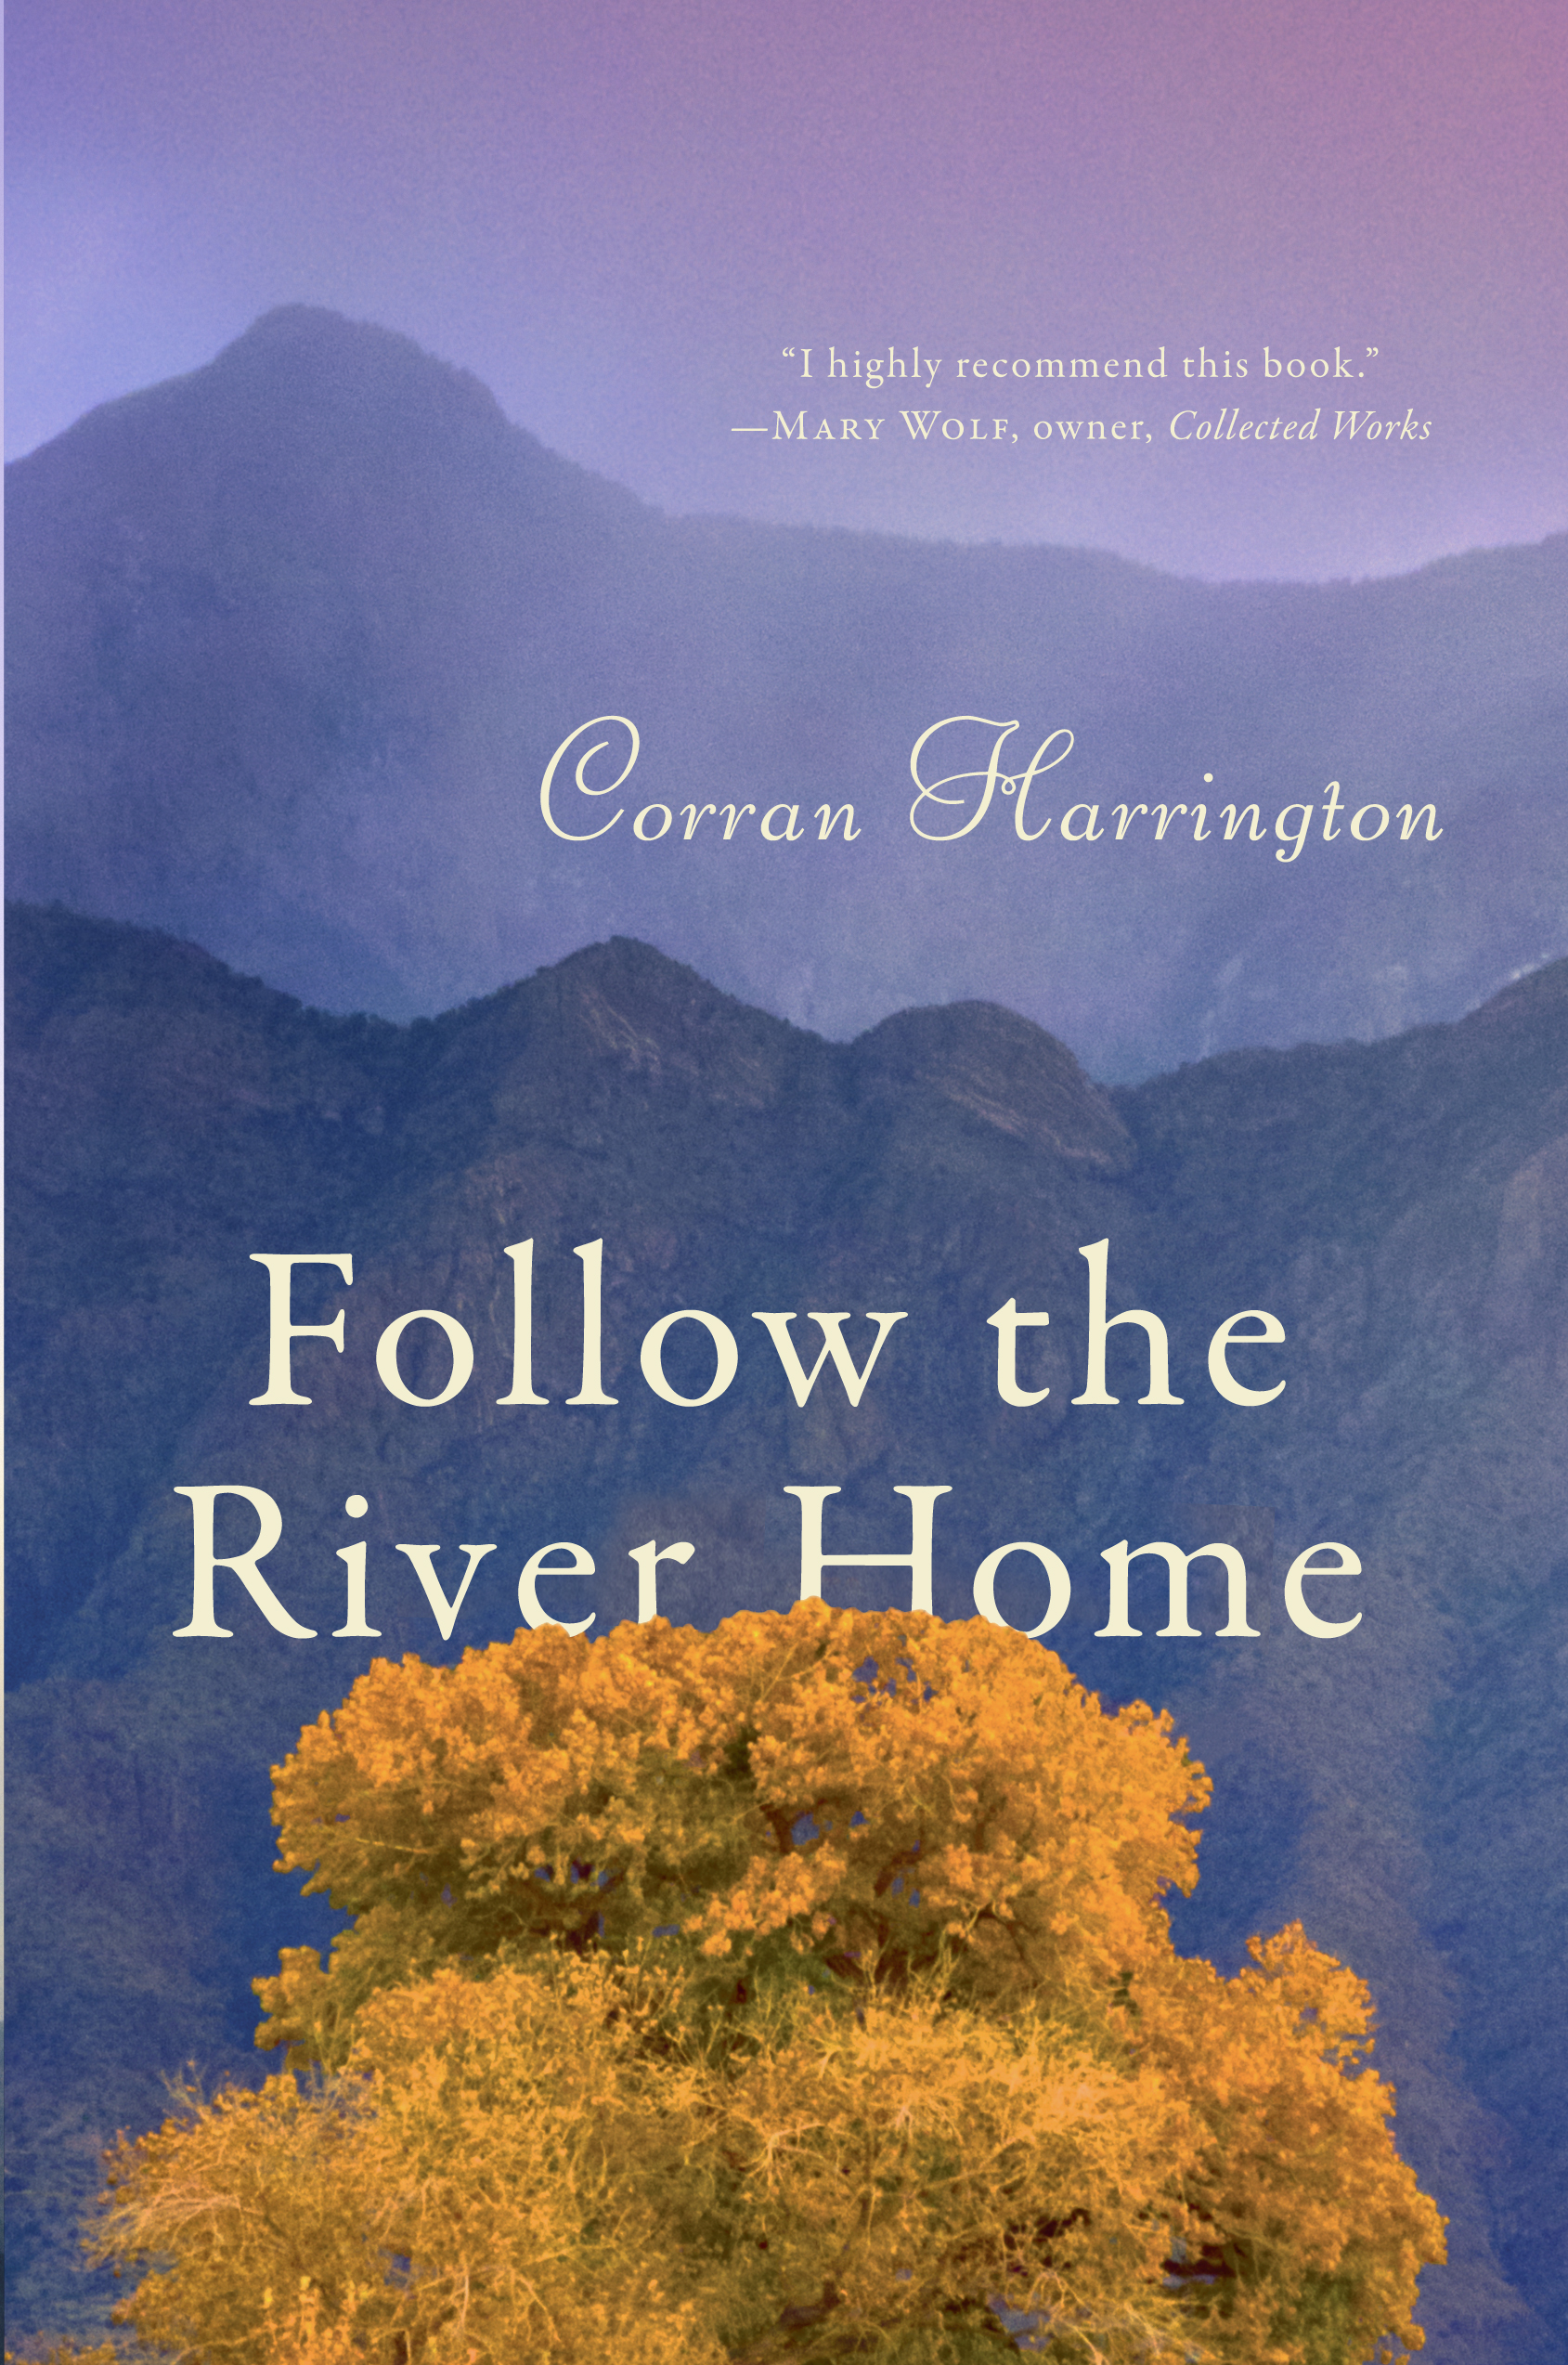 follow the River home cover